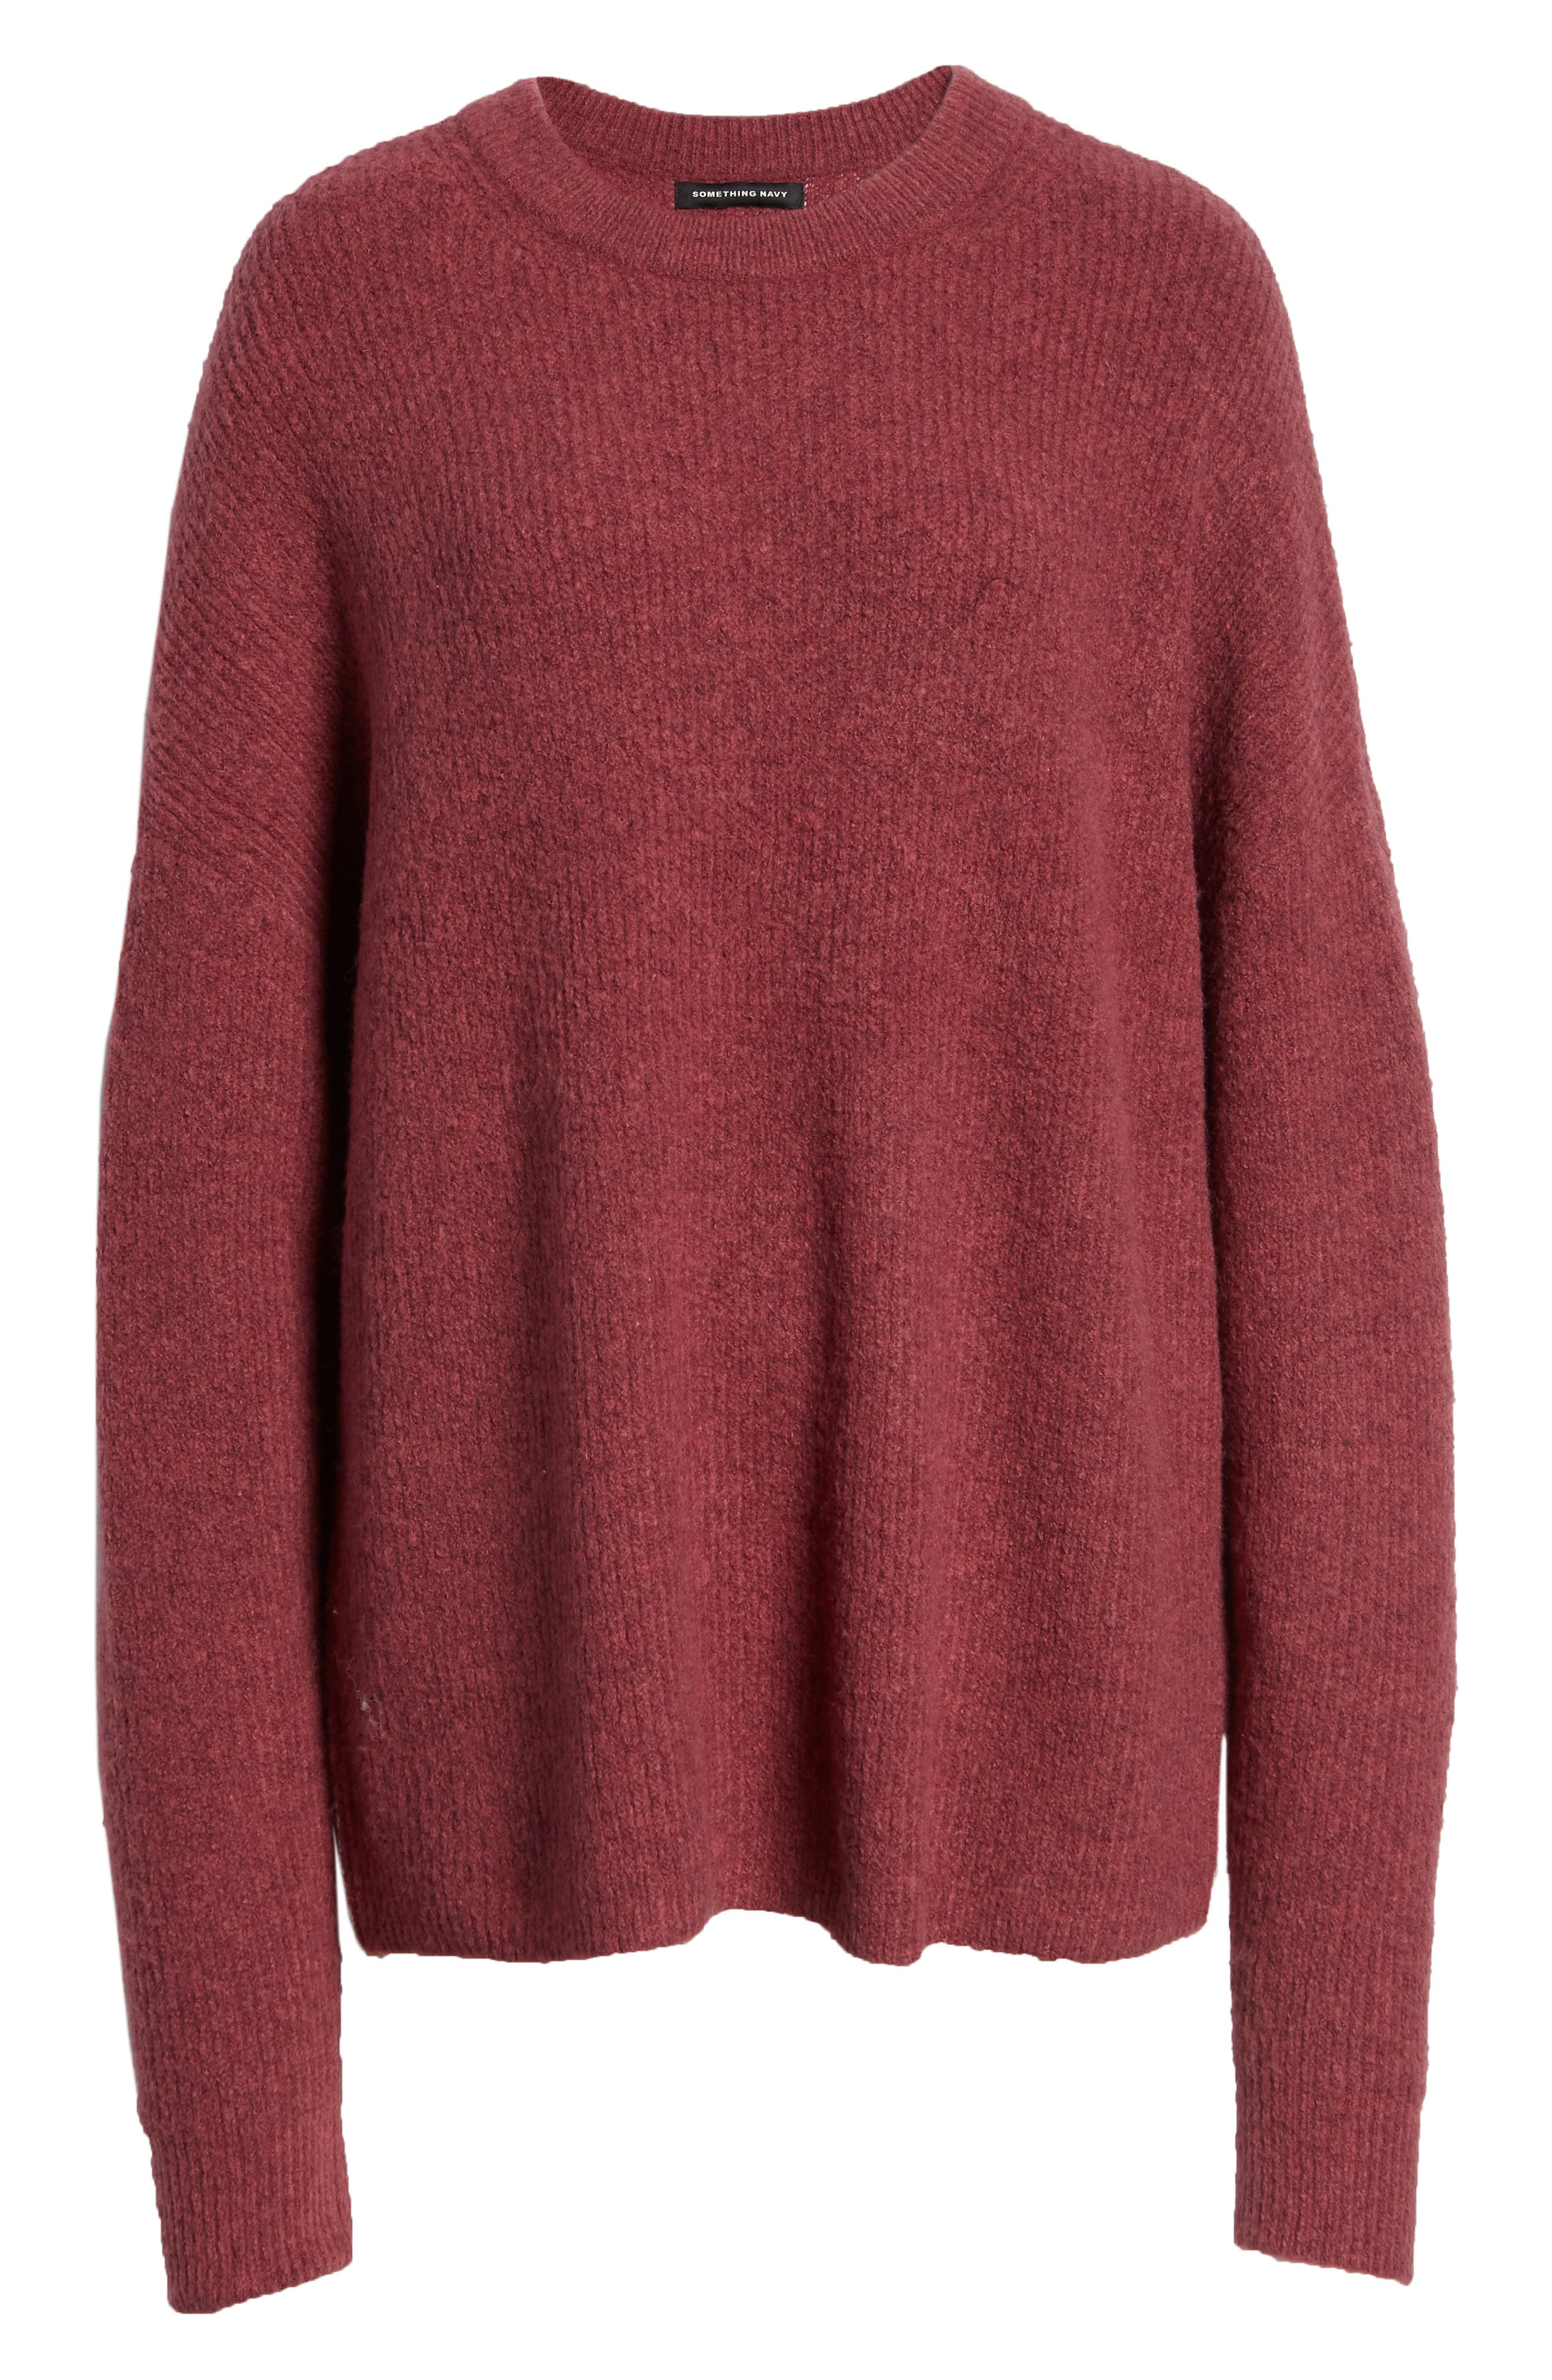 Fuzzy Oversize Sweater,                             Alternate thumbnail 6, color,                             BURGUNDY THORN